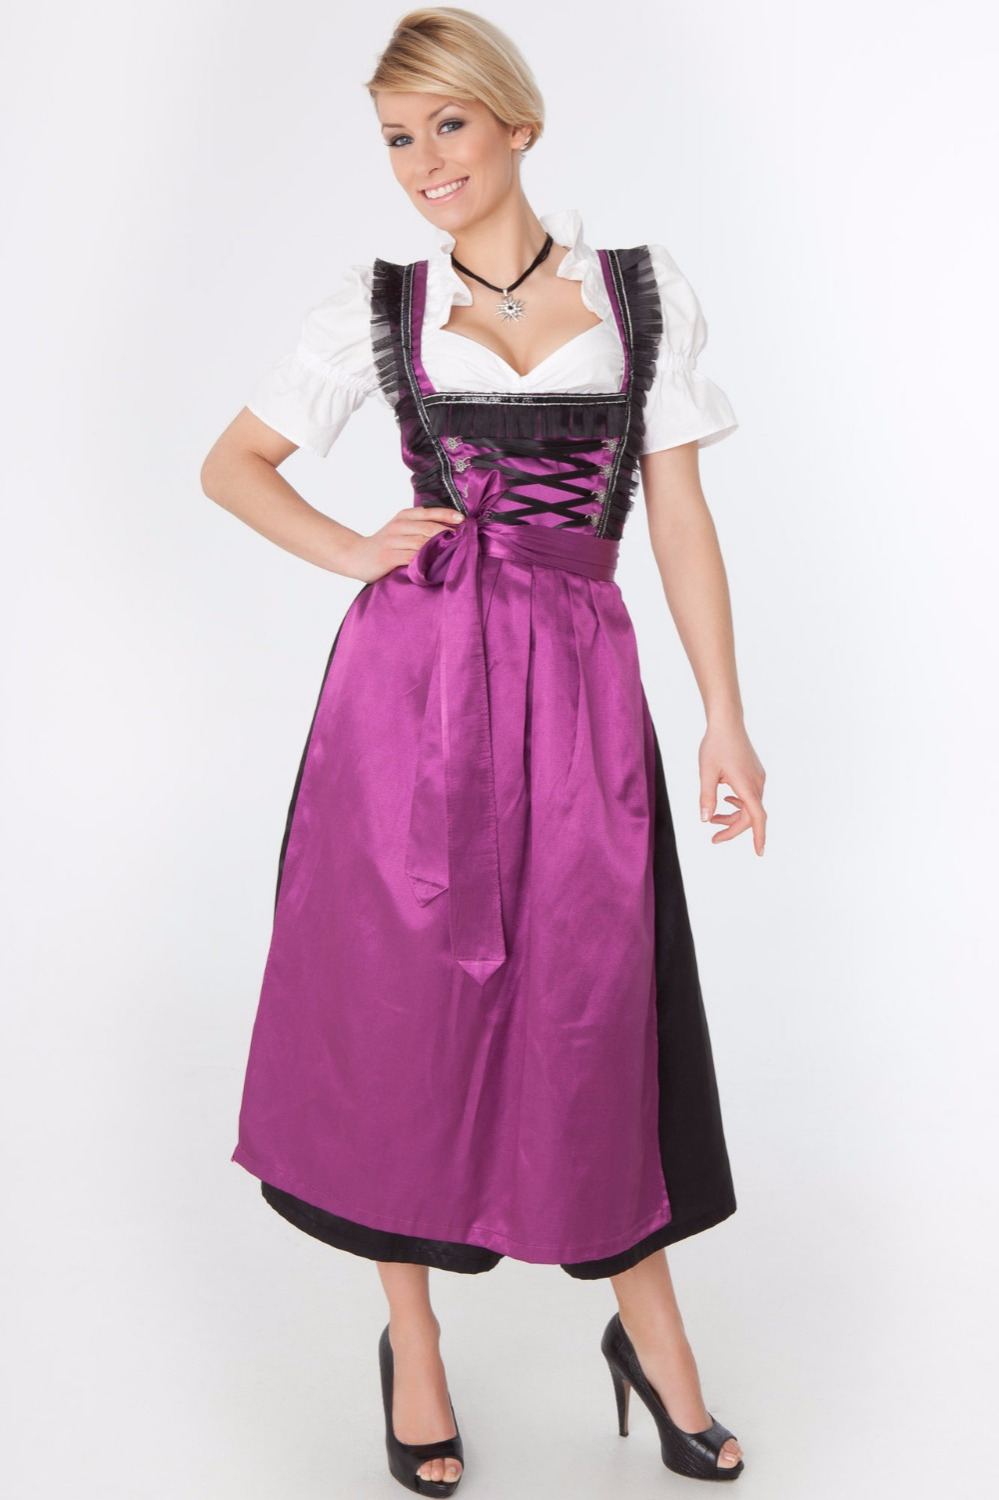 Women's Oktoberfest Beer Girl Dress Ladies Germany Wench Dirndl  Maid Peasant Skirt Dress Apron Blouse Gown Costume